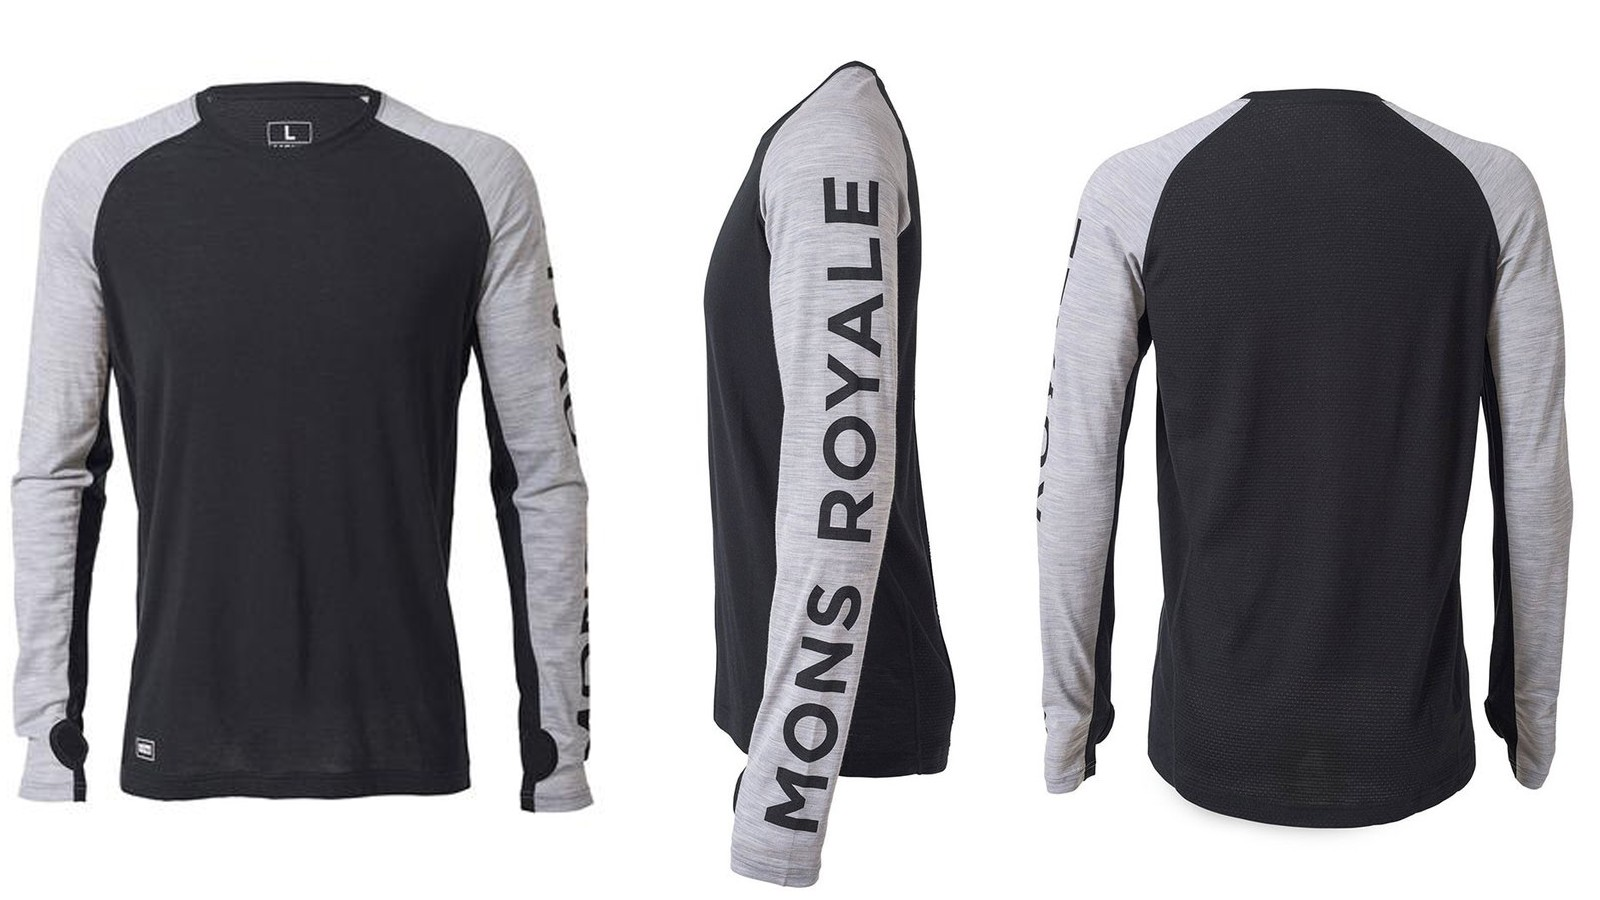 0cdd0a497bb4 Mons Royale's Temple Tech LS baselayer is about as good as they come and  the price